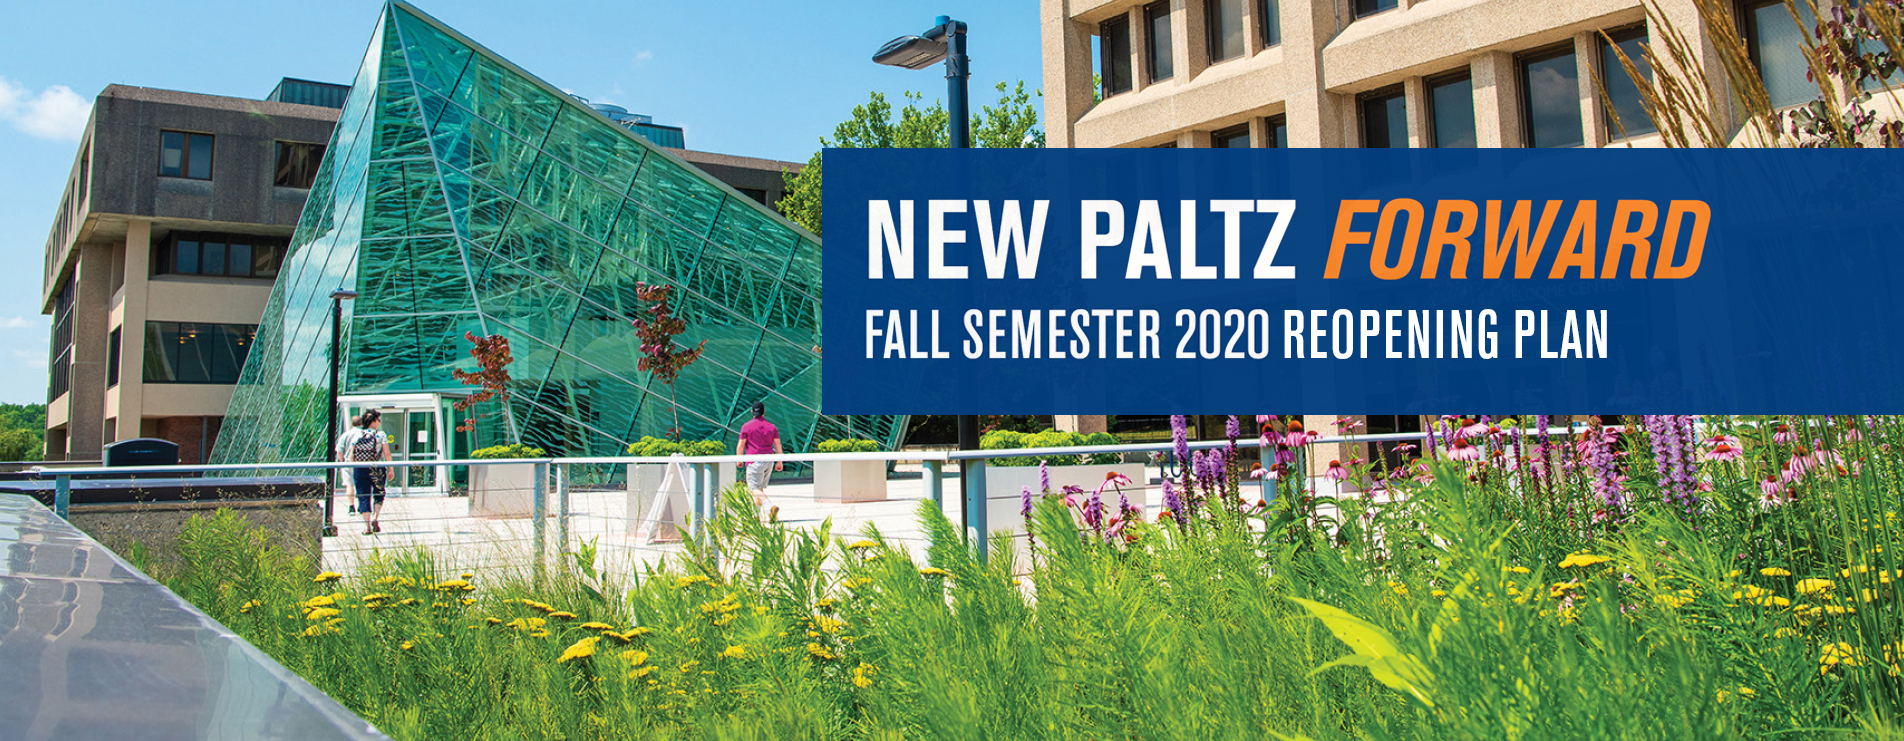 New Paltz FORWARD - 2020 Fall Re-Opening Plan